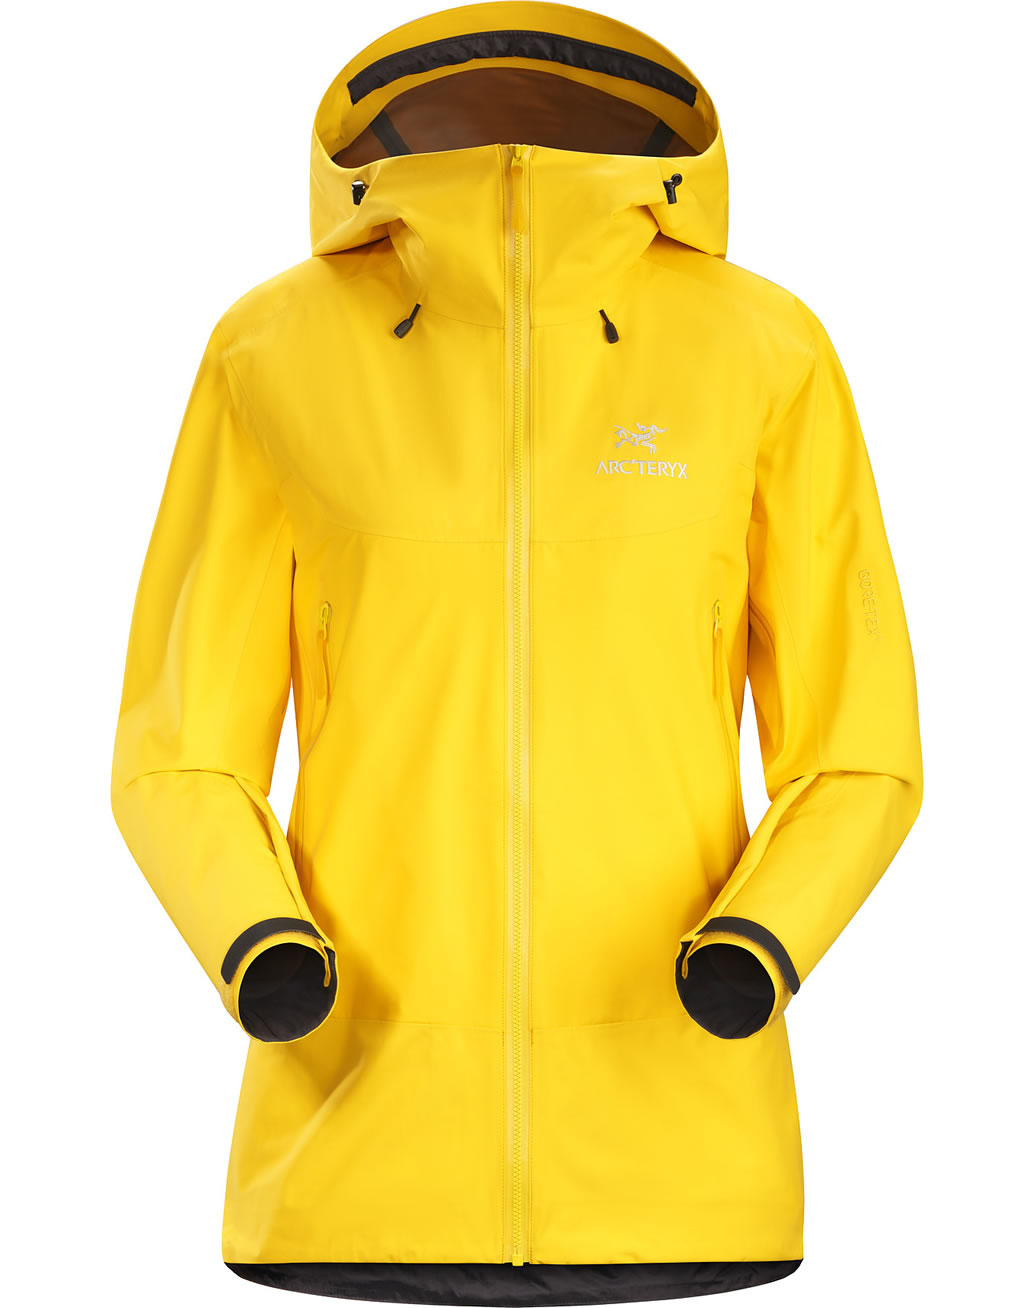 Golden Beta SL Hybrid Jacket for Women